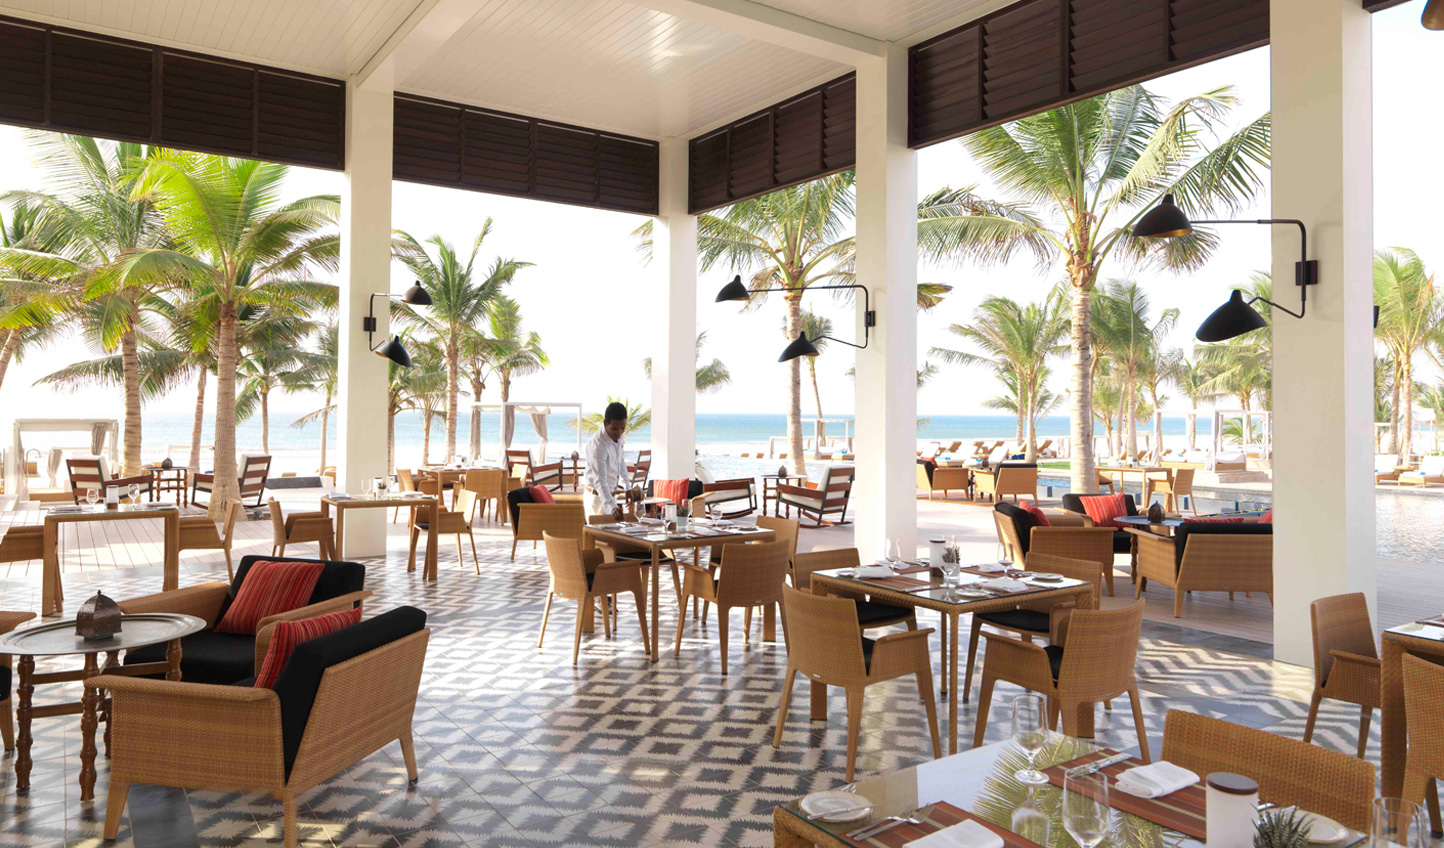 All-day dining just steps away from the sand